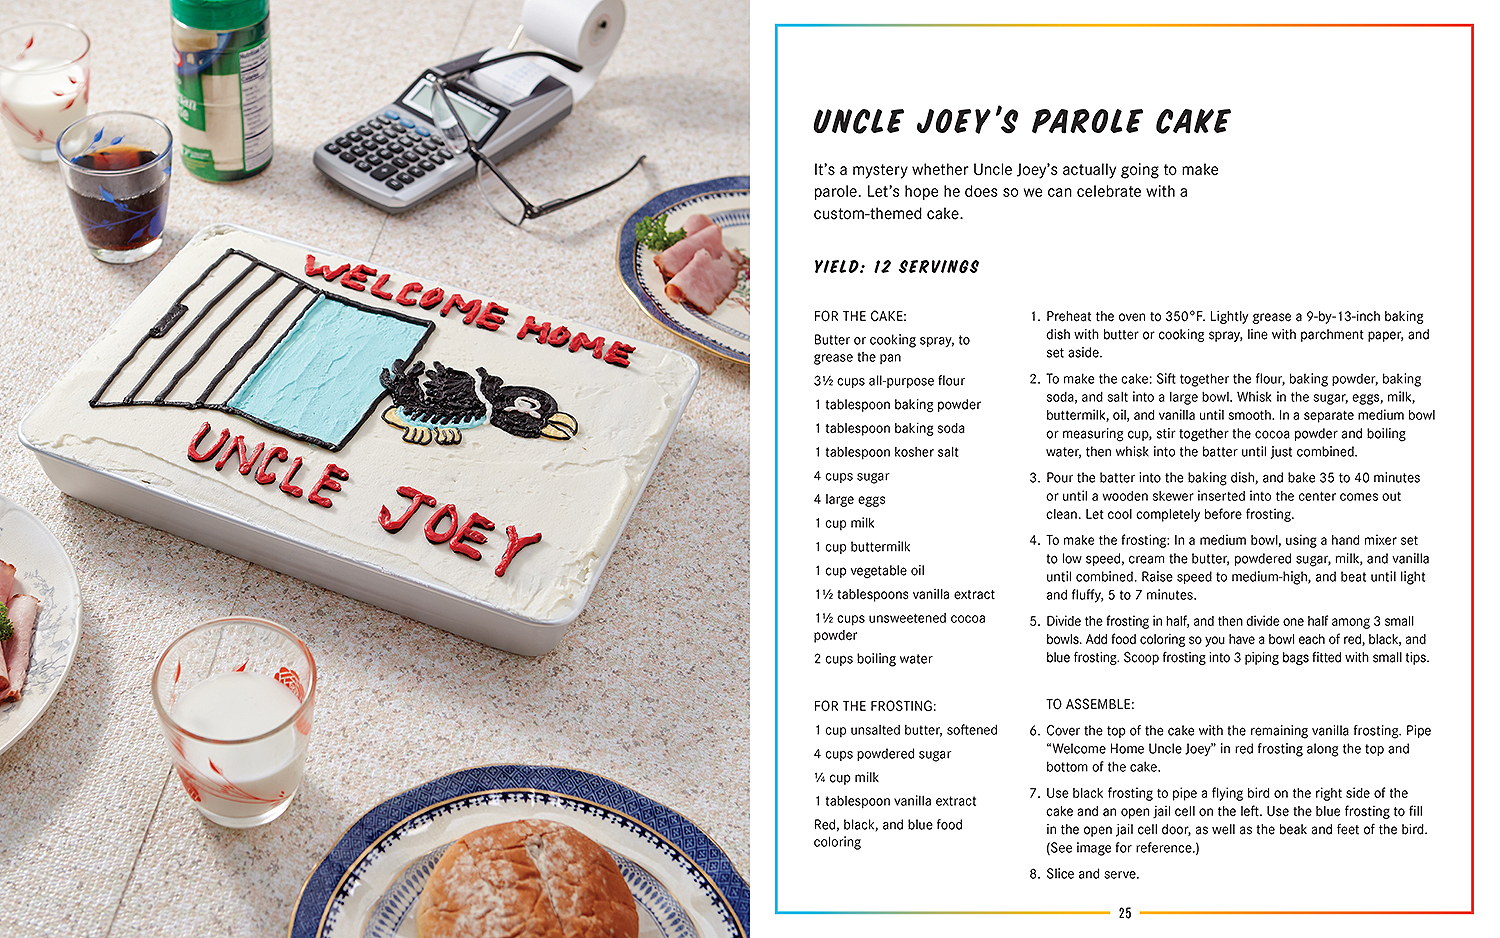 Back to the future cookbook